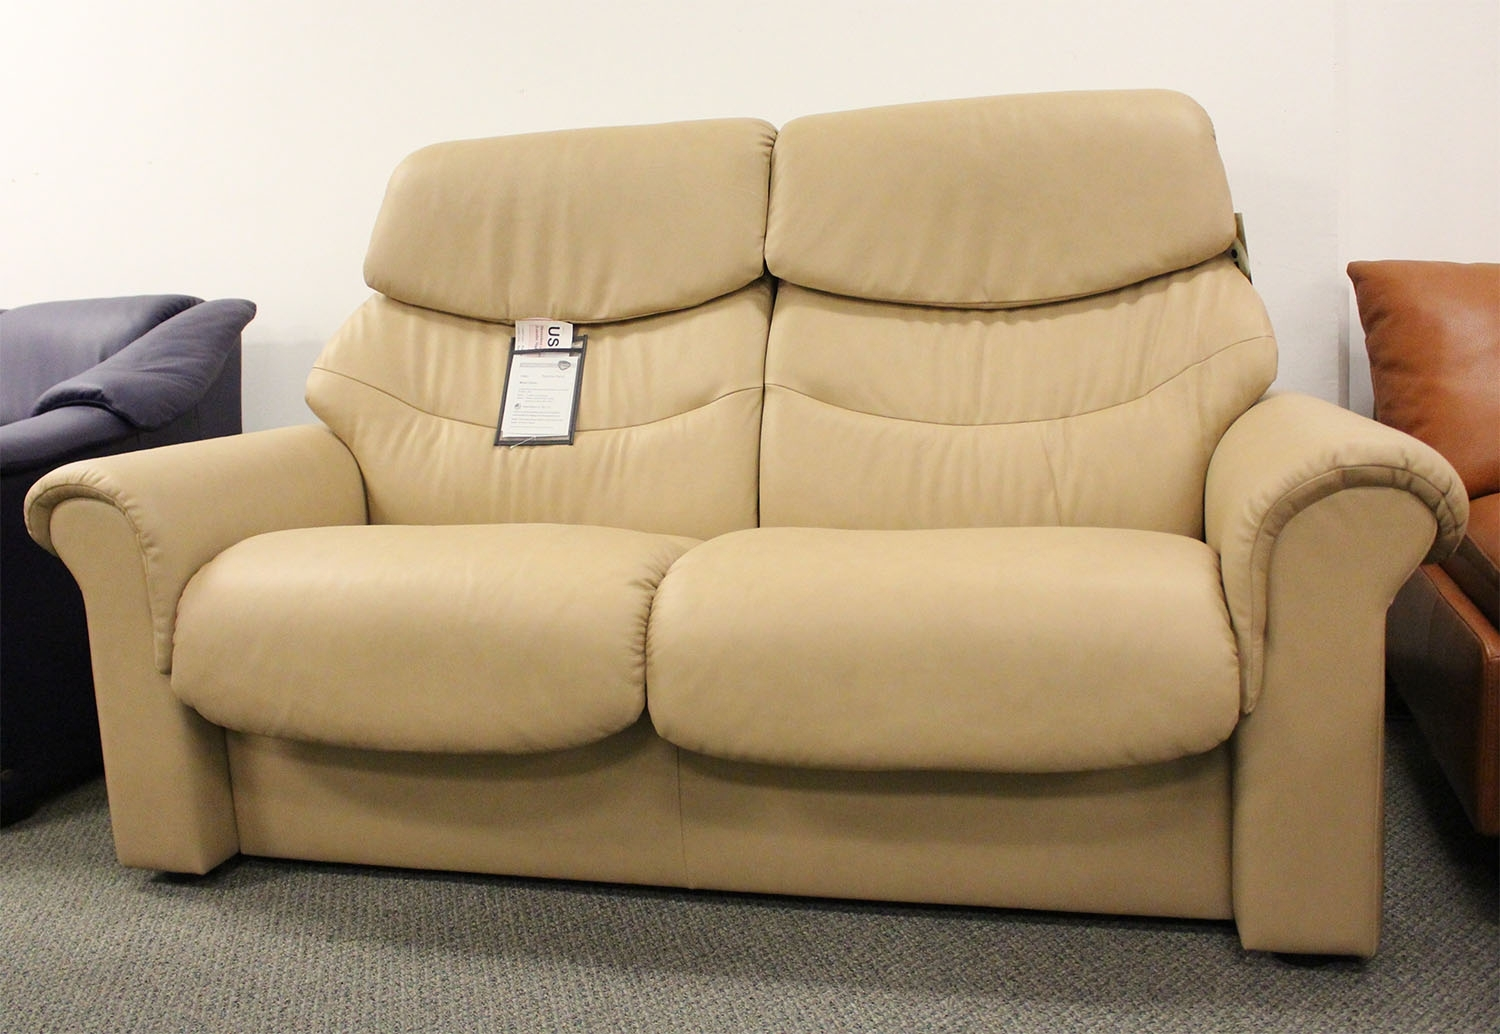 High Back Sectional Sofas – It Is Better To Opt For Leather Or Fabric? Throughout High Point Nc Sectional Sofas (View 10 of 10)